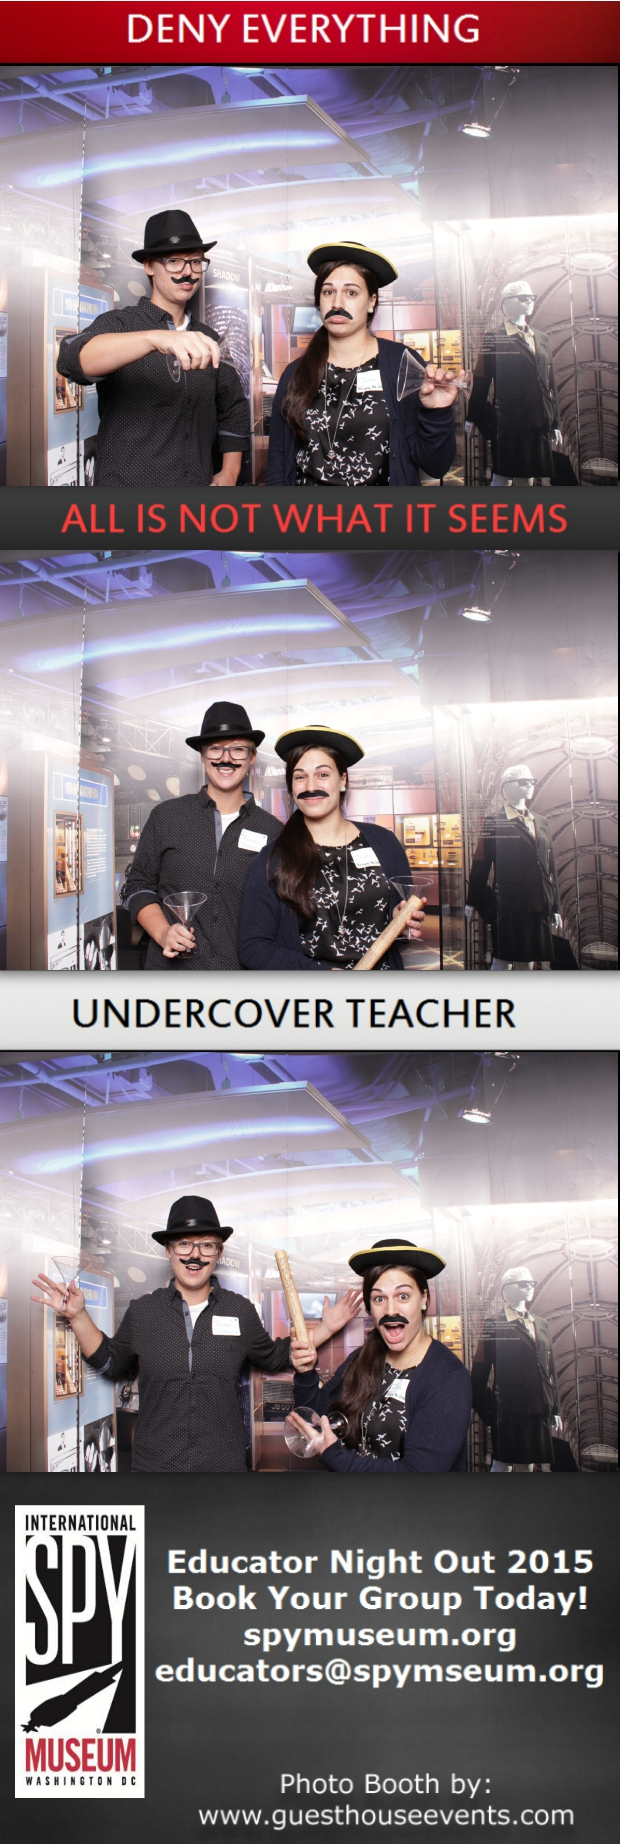 Guest House Events Photo Booth Spy Museum Educator Night Out (58).jpg